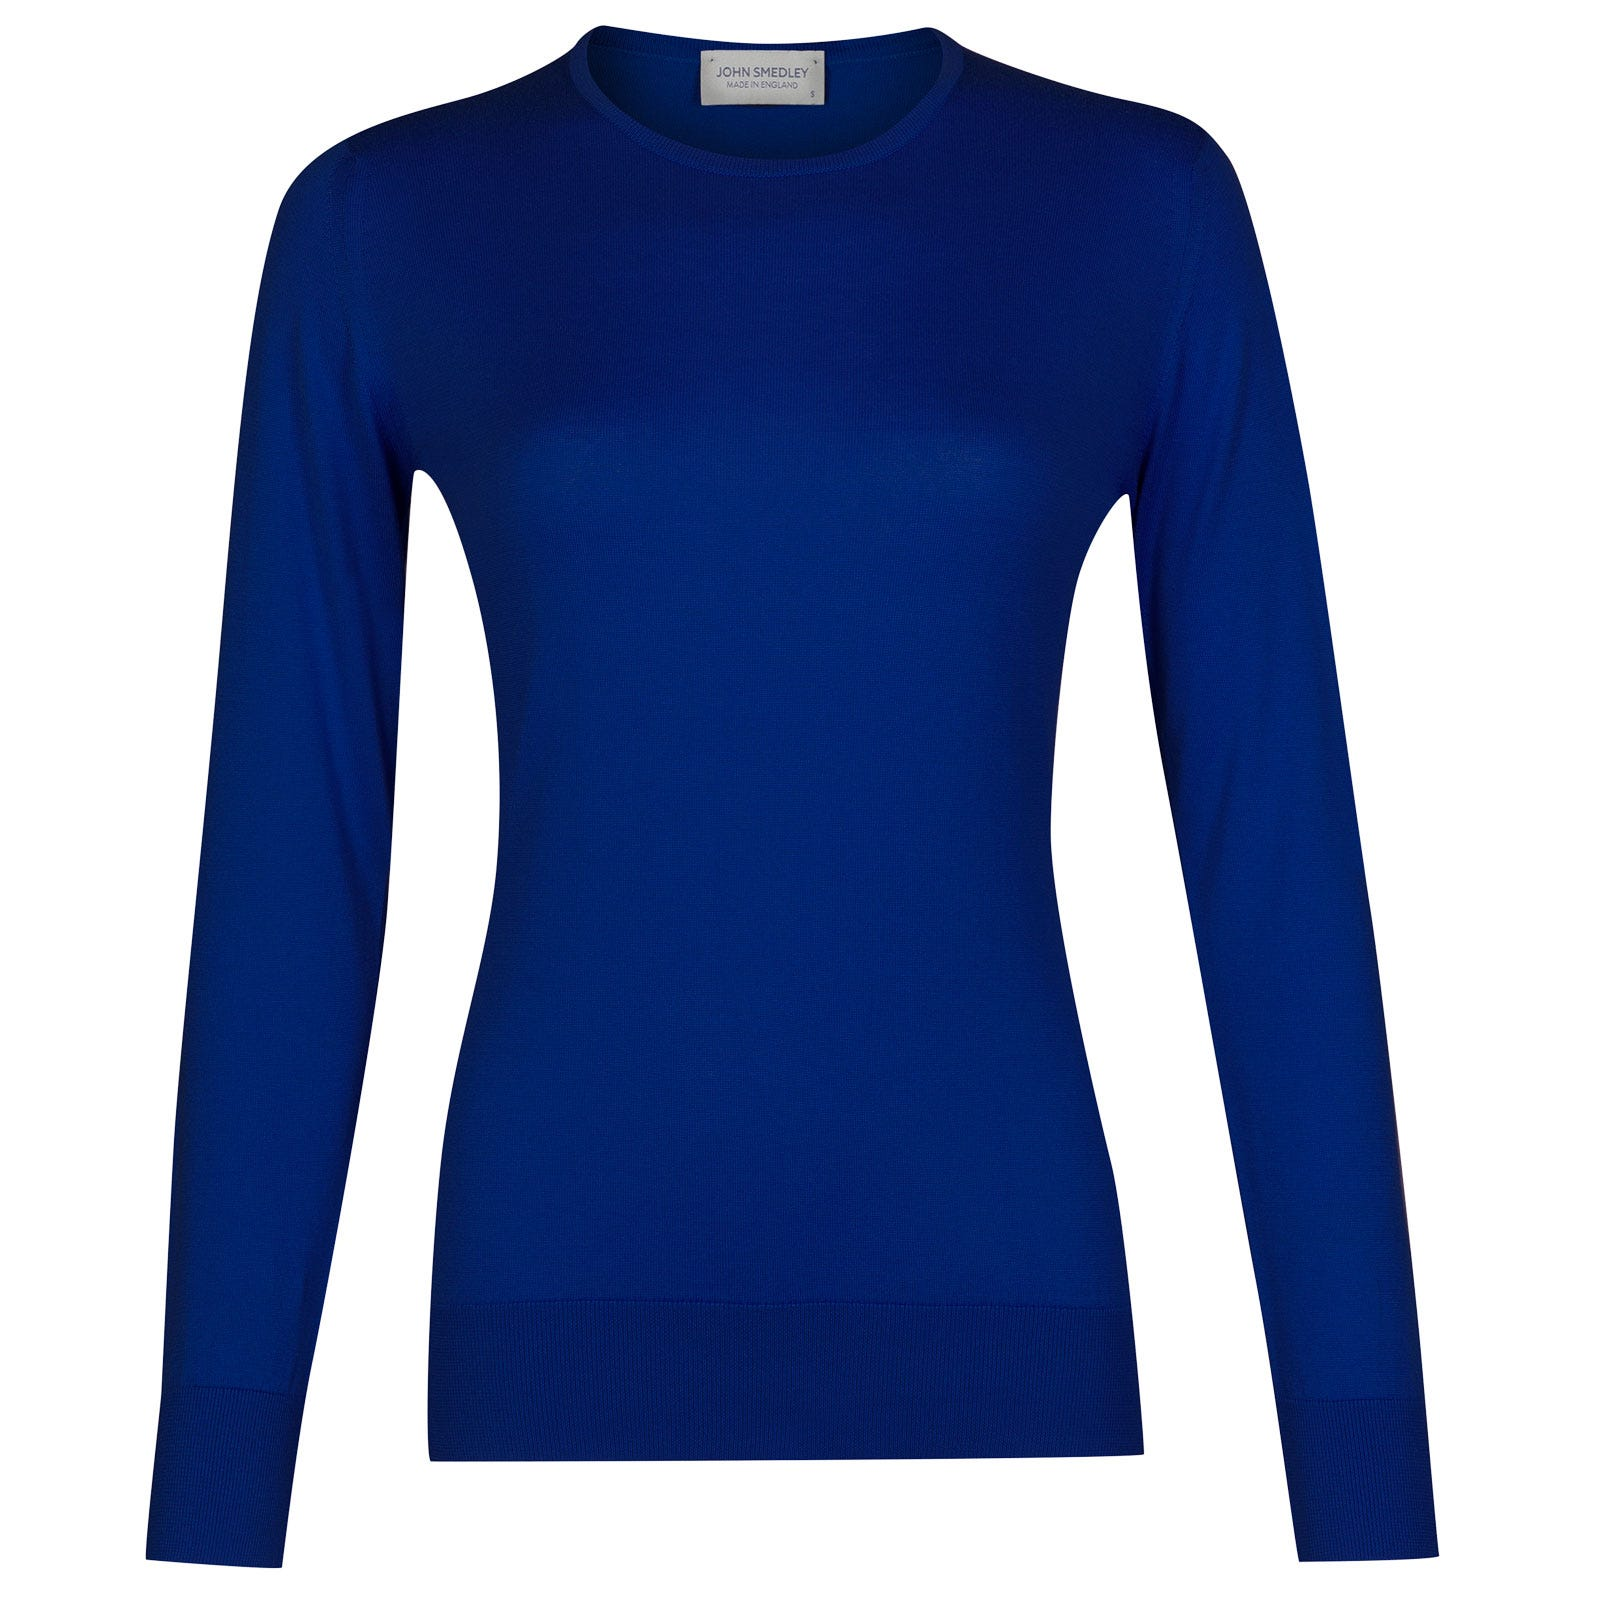 John Smedley paddington Sea Island Cotton Sweater in Coniston Blue-S